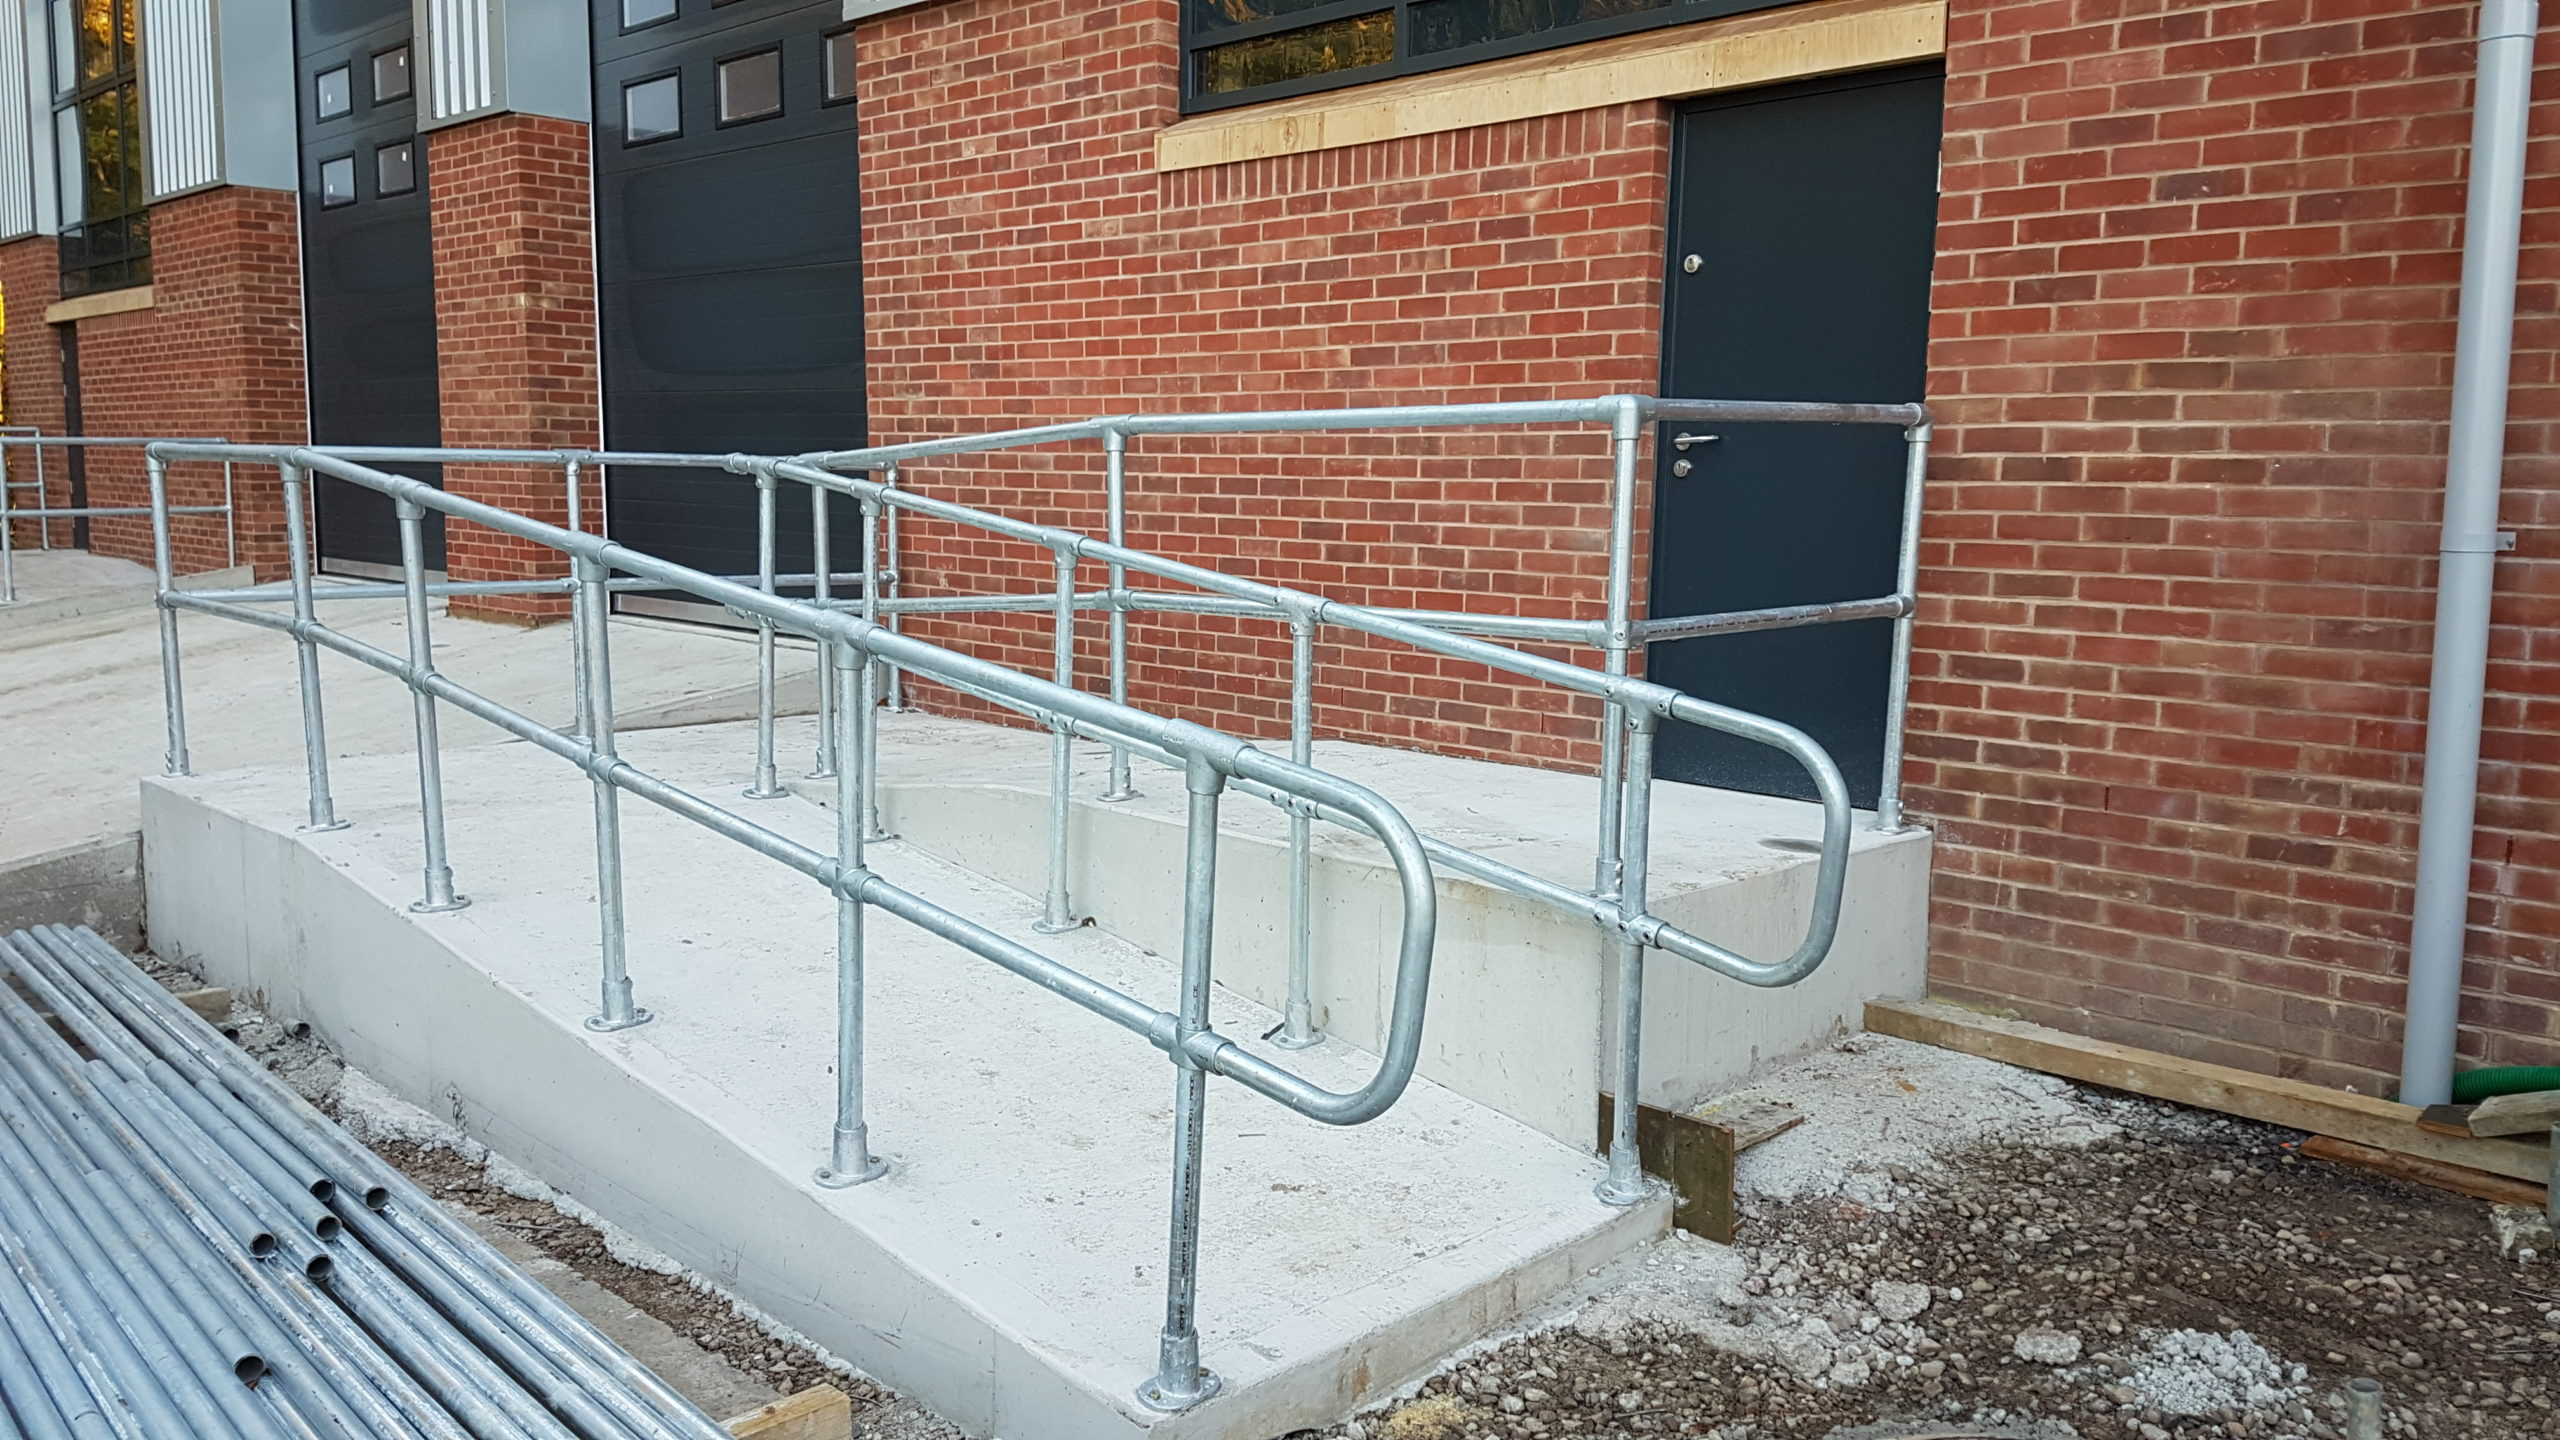 Key Clamp Handrail Systems: A Buyer's Guide